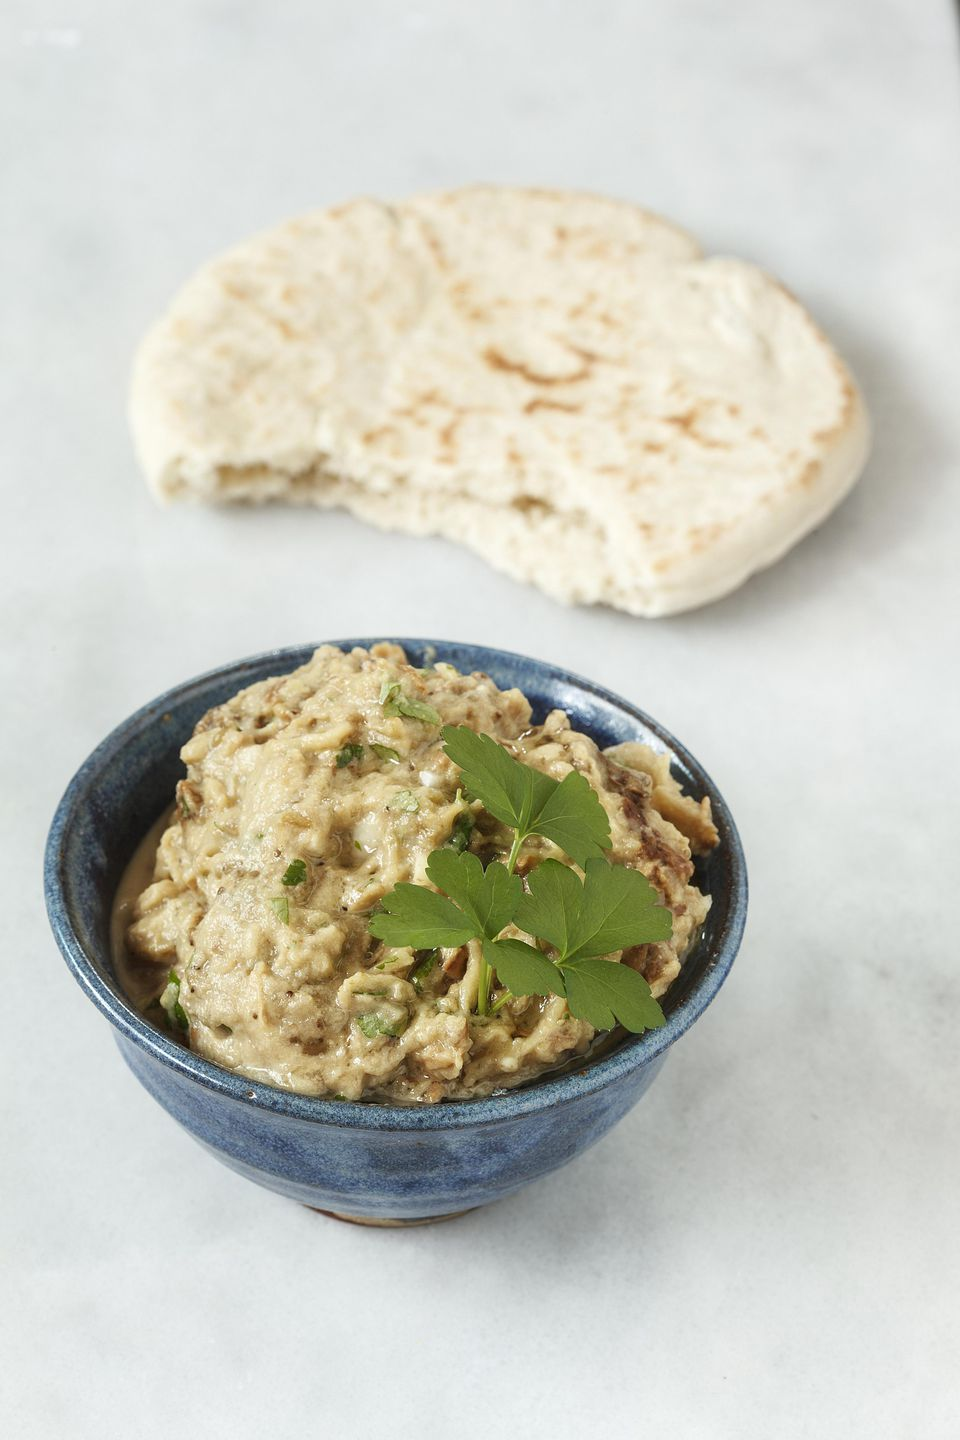 Grilled Eggplant Dip with Toasted Pita